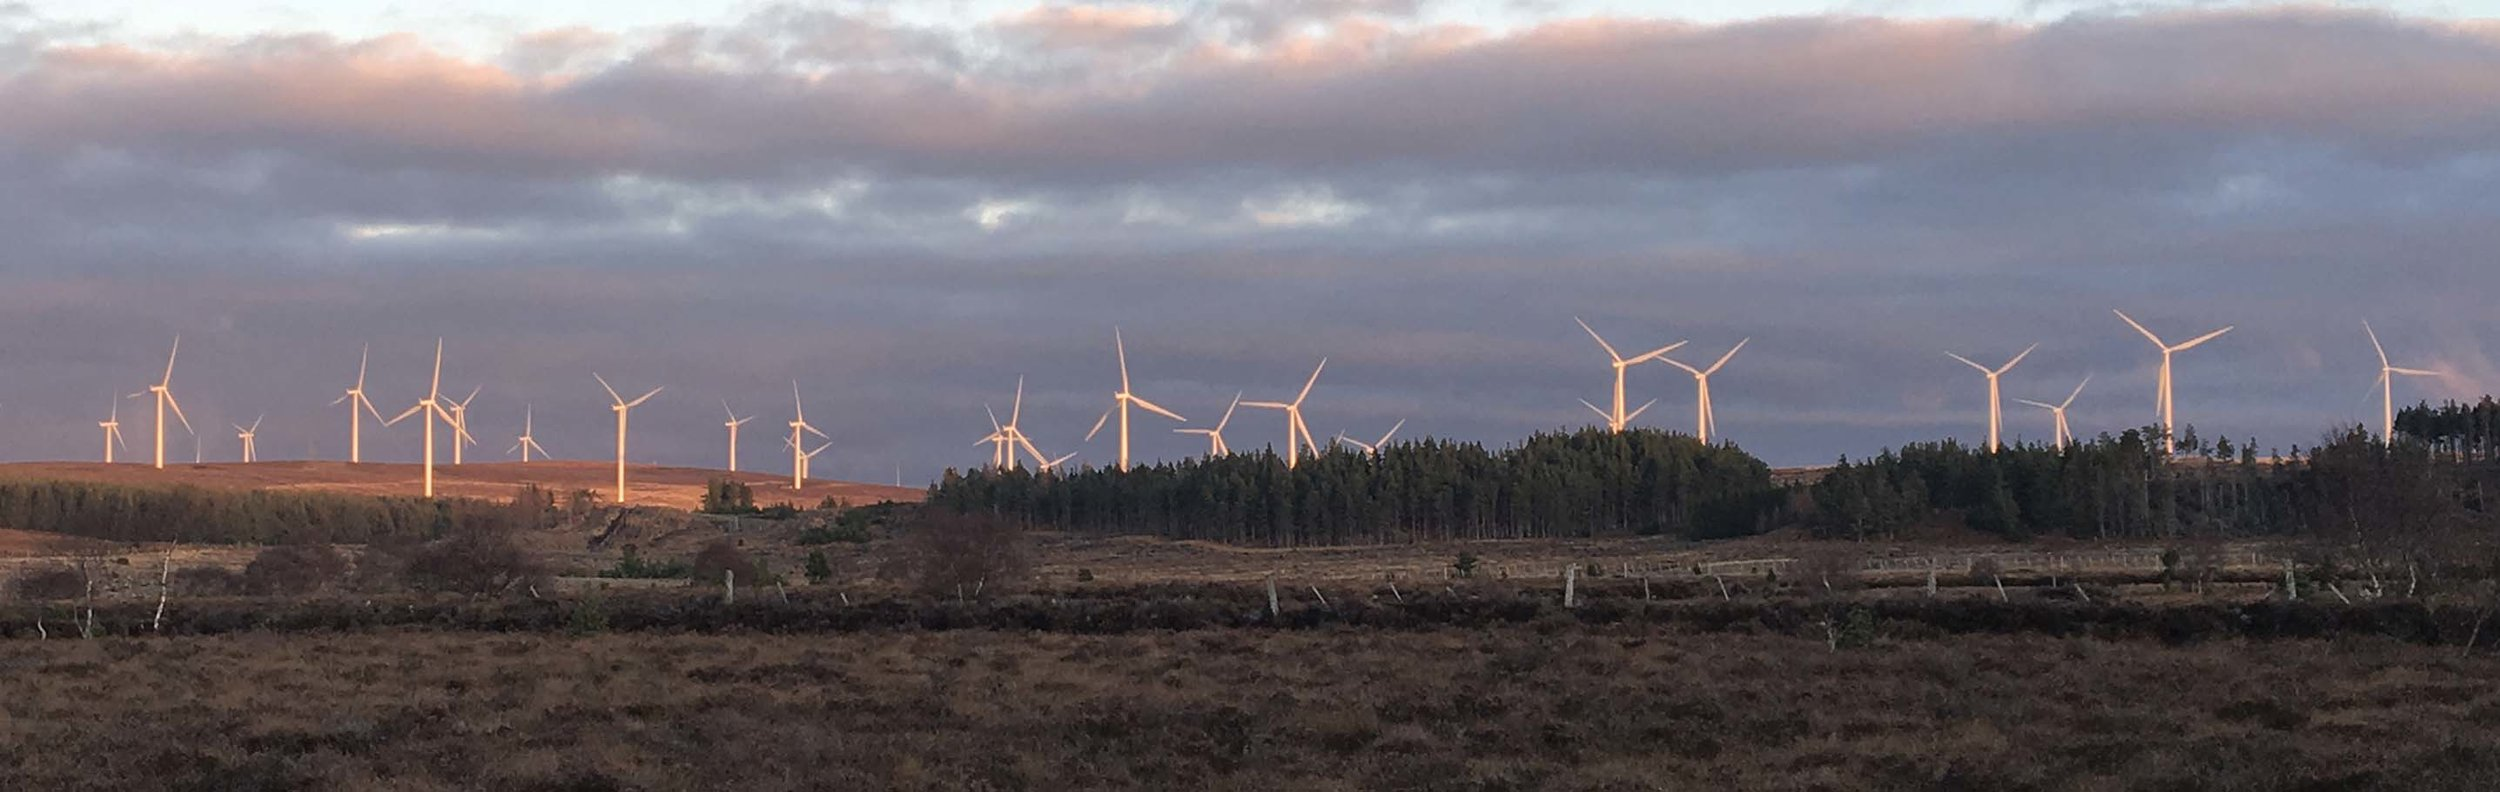 Part of Fred Olsens existing development at Rothes 1 & 2. Their THIRD extension threatens a further 29 Turbines, MOST up to 225 metres tall.